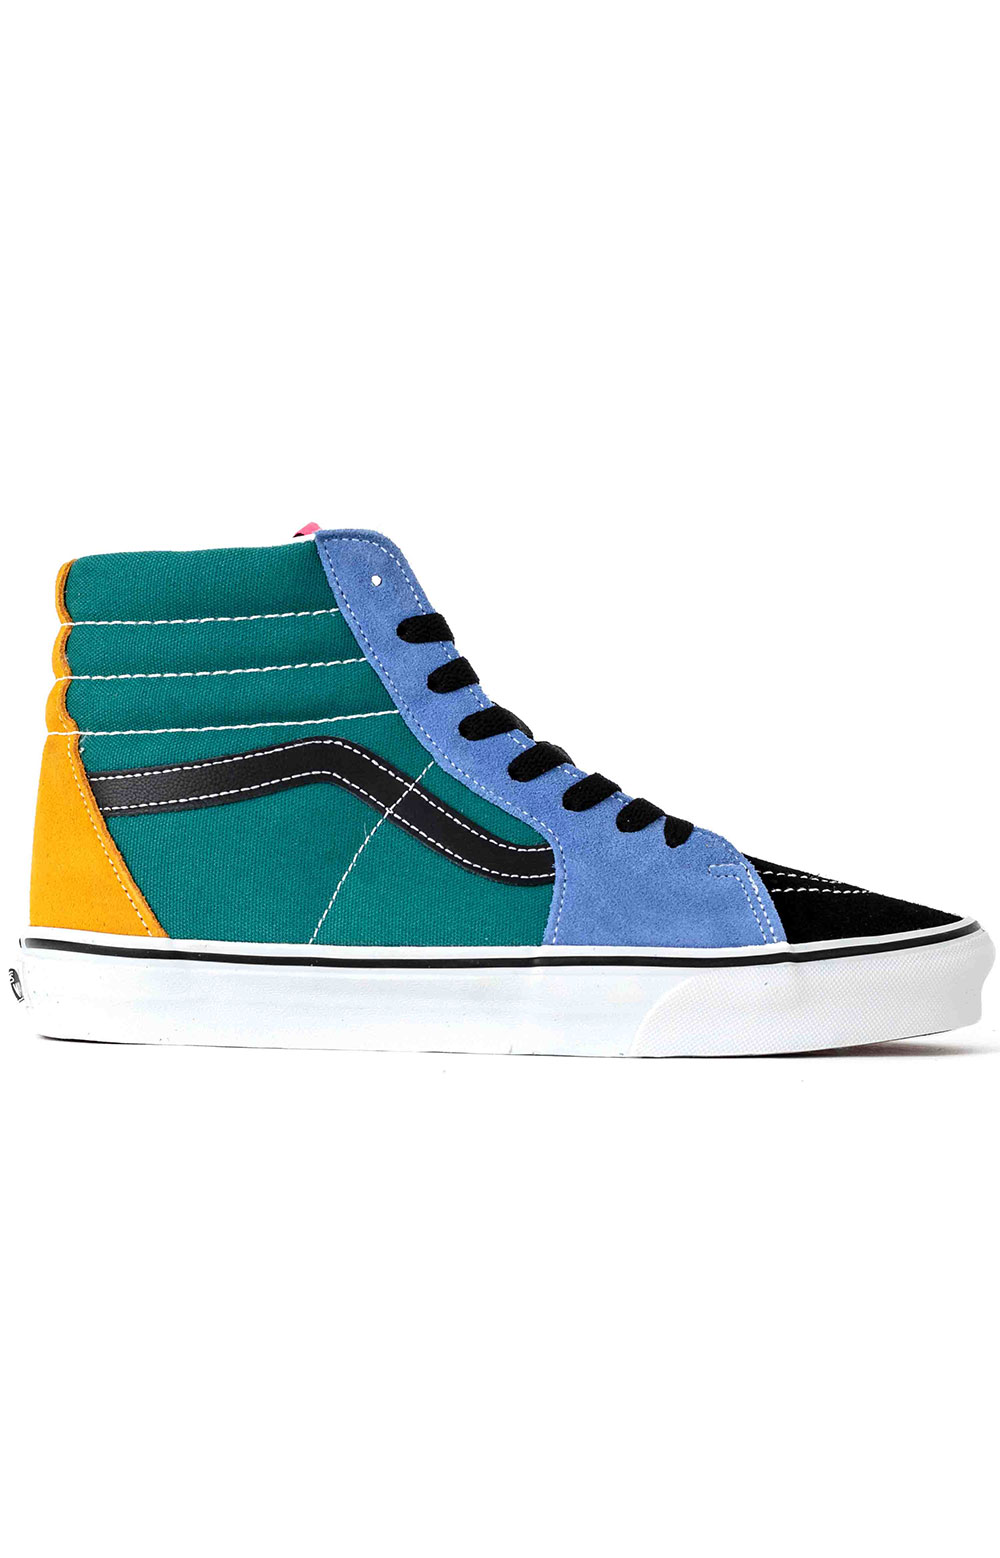 (BV6TGN) Mix & Match Sk8-Hi Shoe